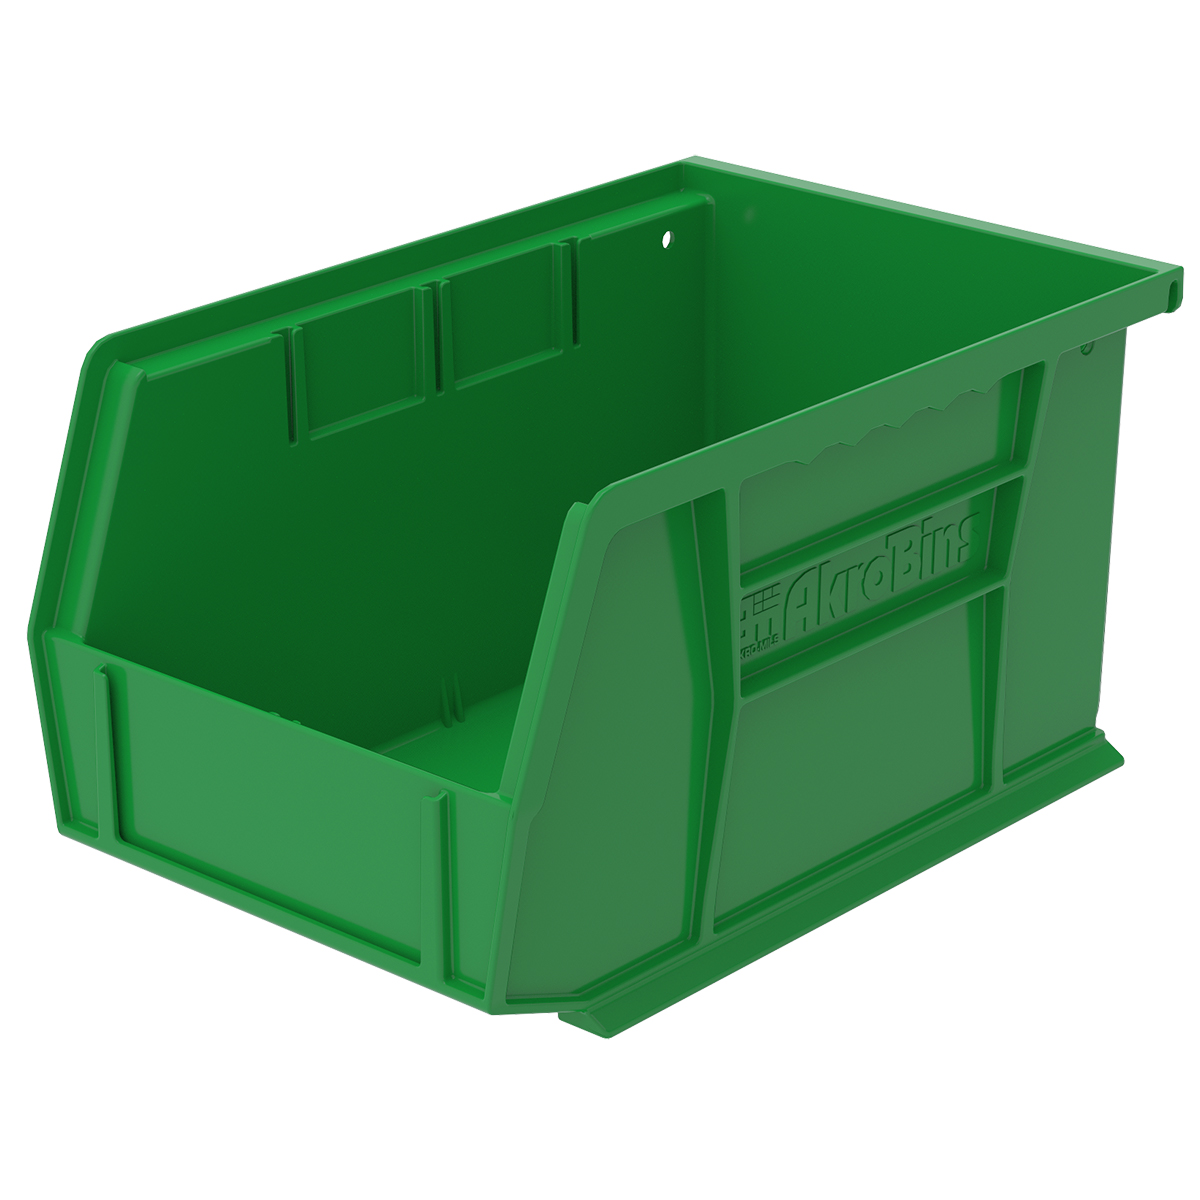 AkroBin 9-1/4 x 6 x 5, Green (30237GREEN).  This item sold in carton quantities of 12.